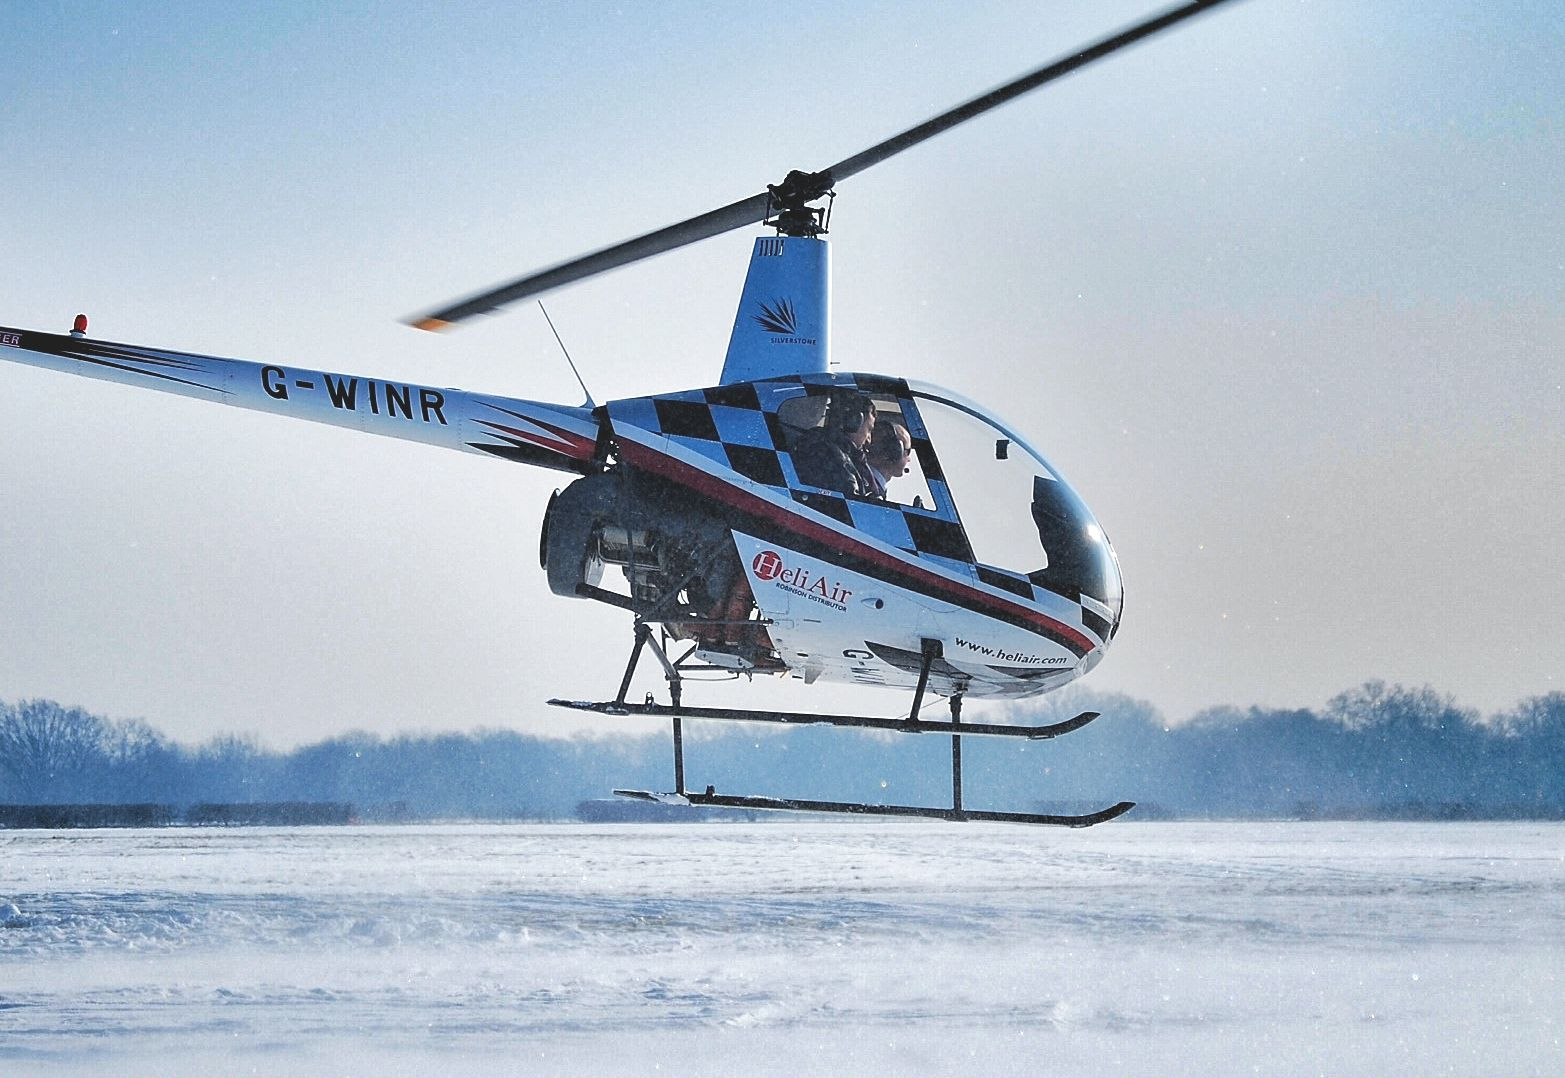 airbus helicopters with Helicopter Hover Challenge on 217 Airbus A320 besides H160 also Airbus Helicopters H145   Private 248042 large furthermore Helicopters H130 Finds New Application Aerial Work together with Helicopter Hover Challenge.